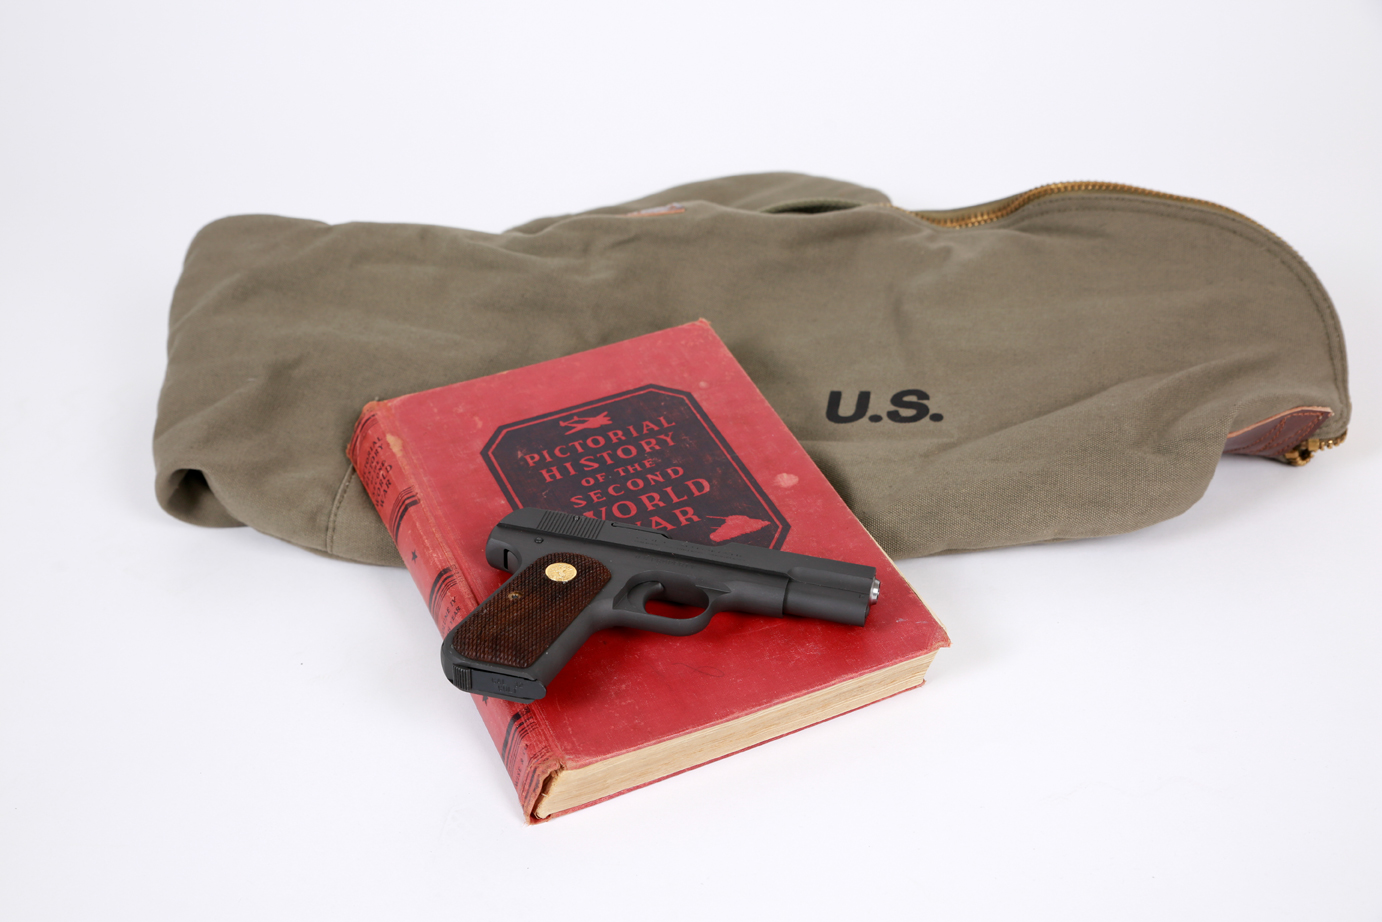 Colt 1903 on OD green bag with red WWII book